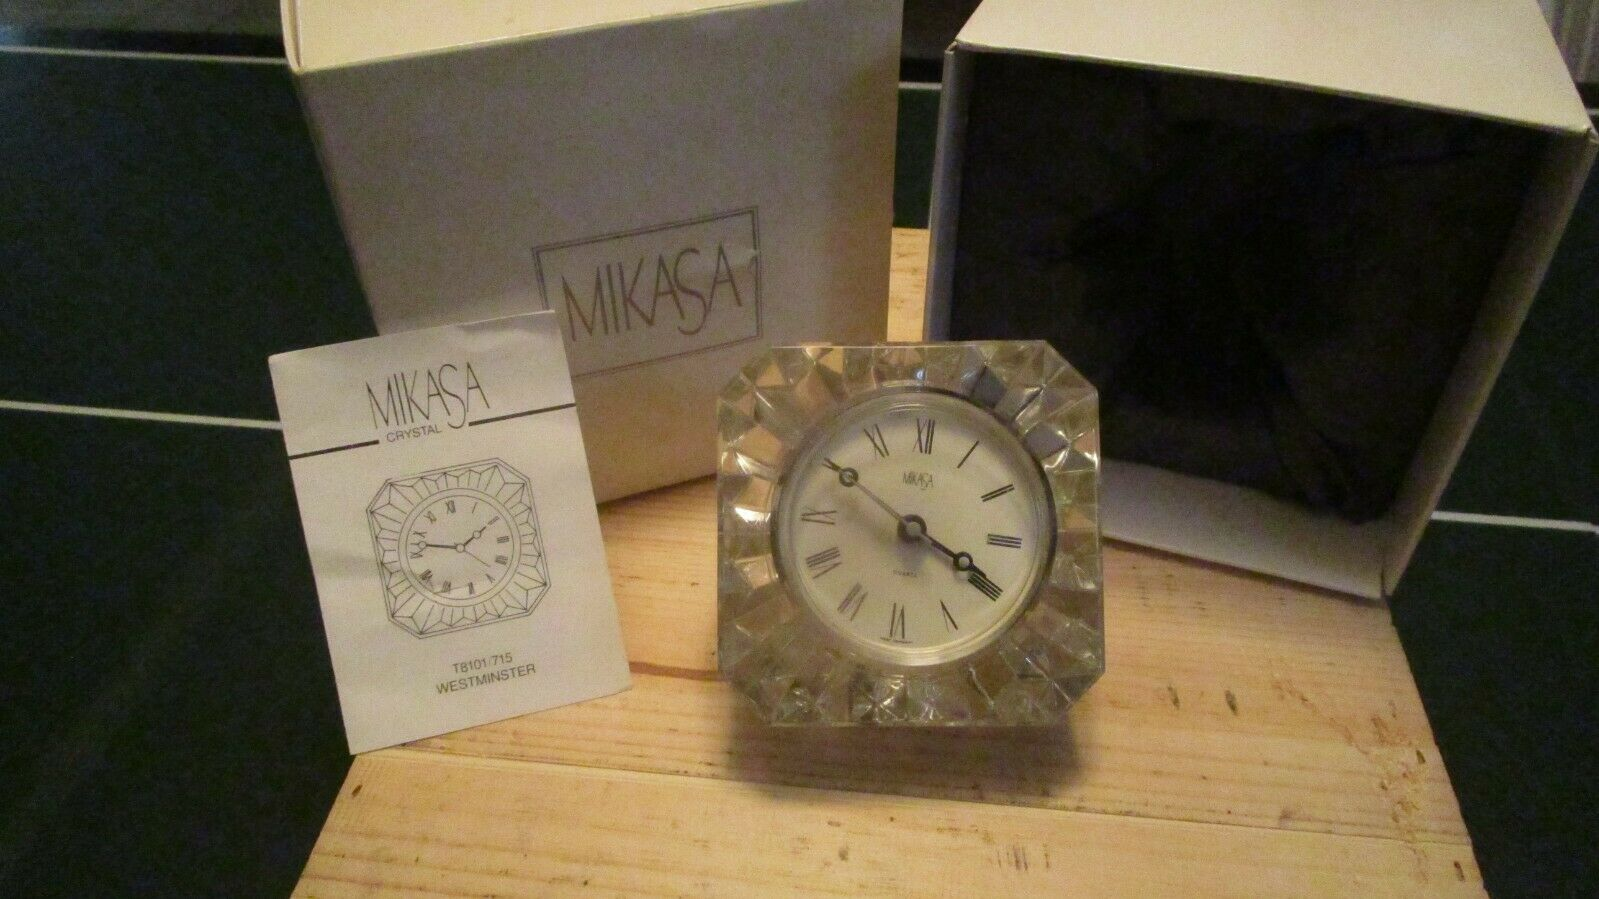 Mikasa Crystal Westminster Square Mantel Quartz Clock - $65.00